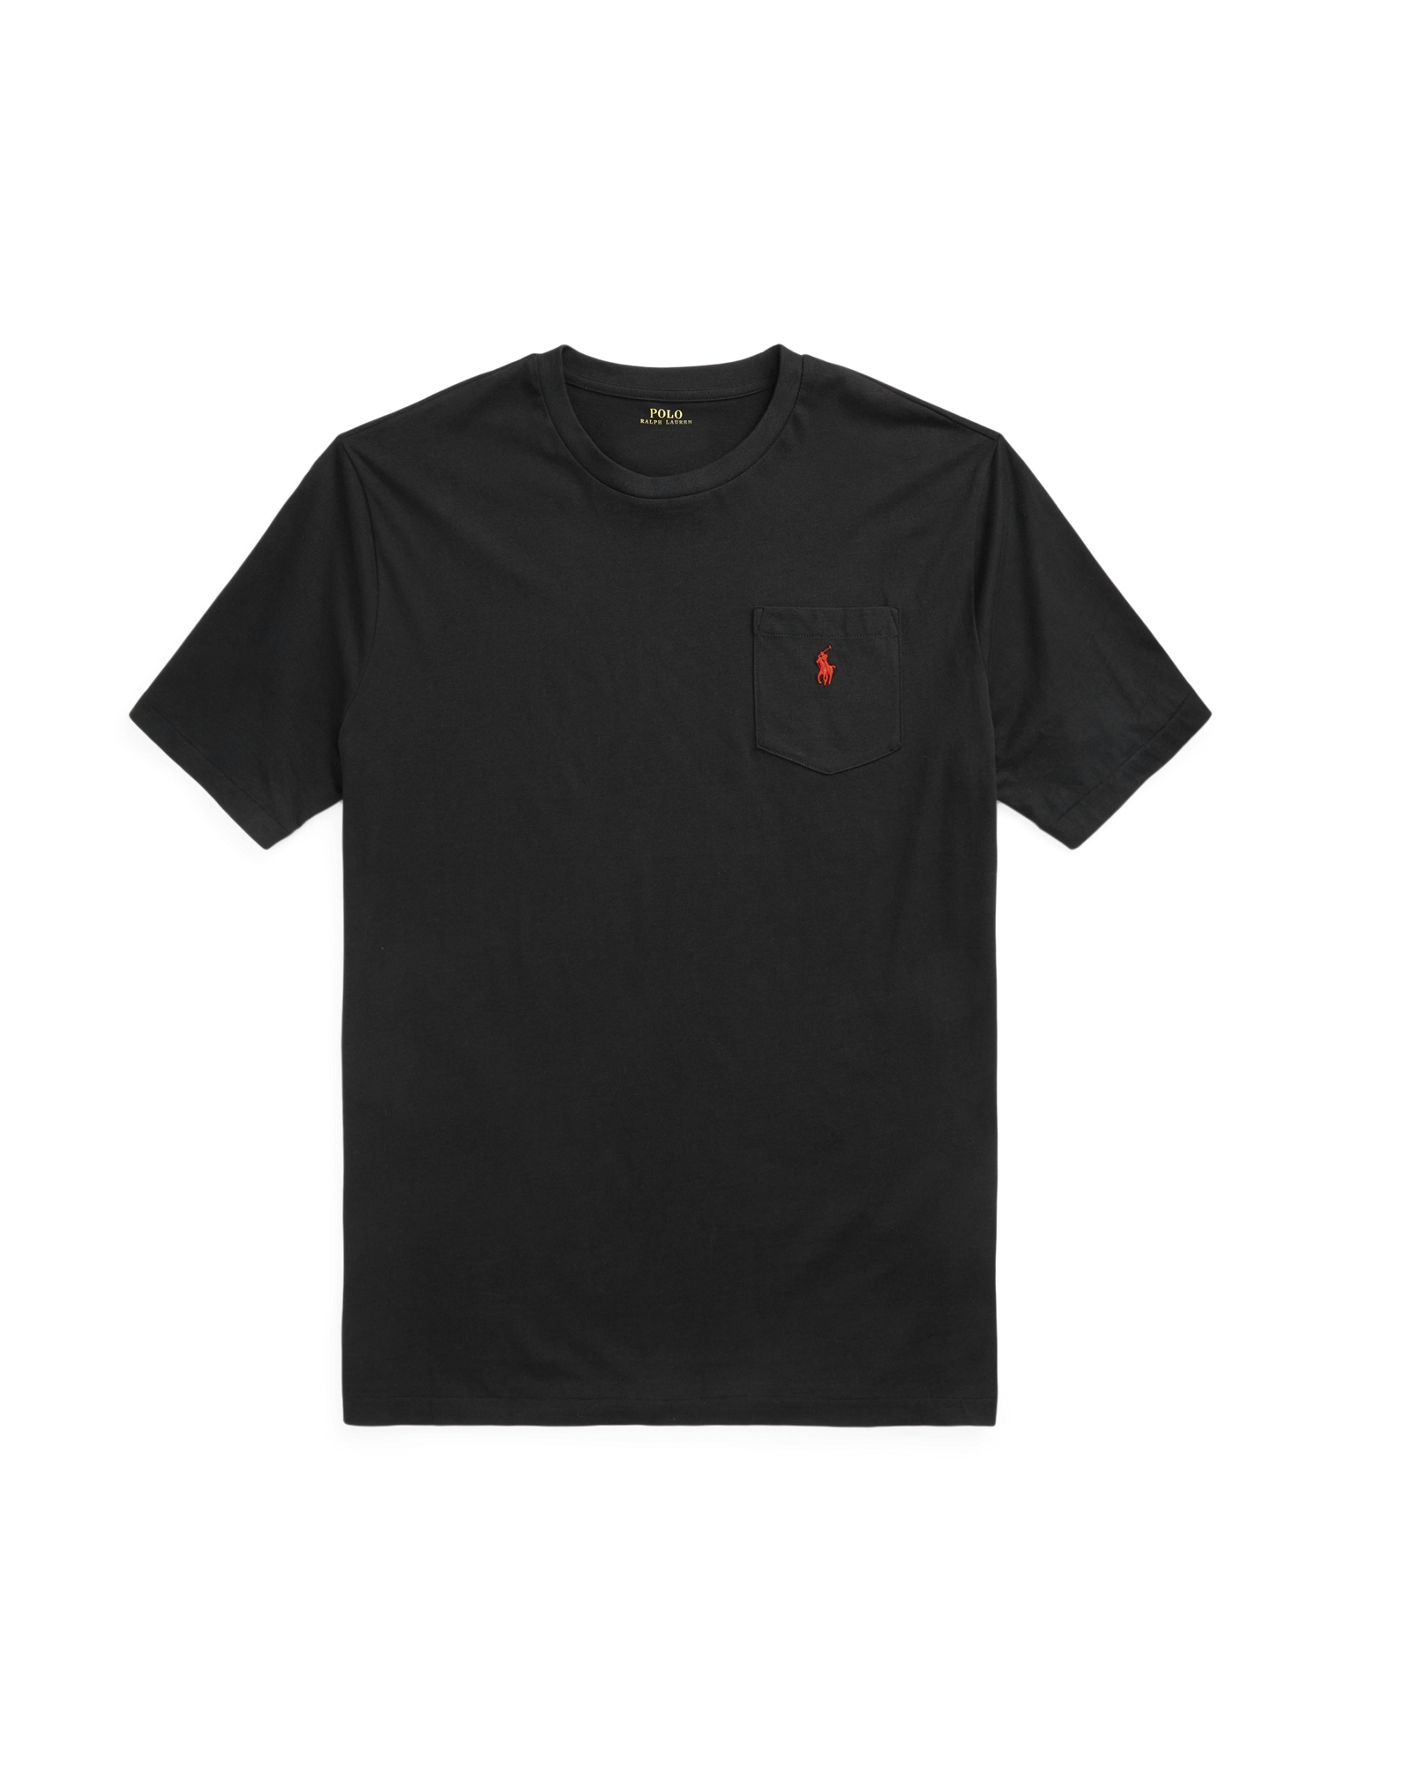 Polo ralph lauren t shirt classic fit pocket for Polo t shirts with pockets